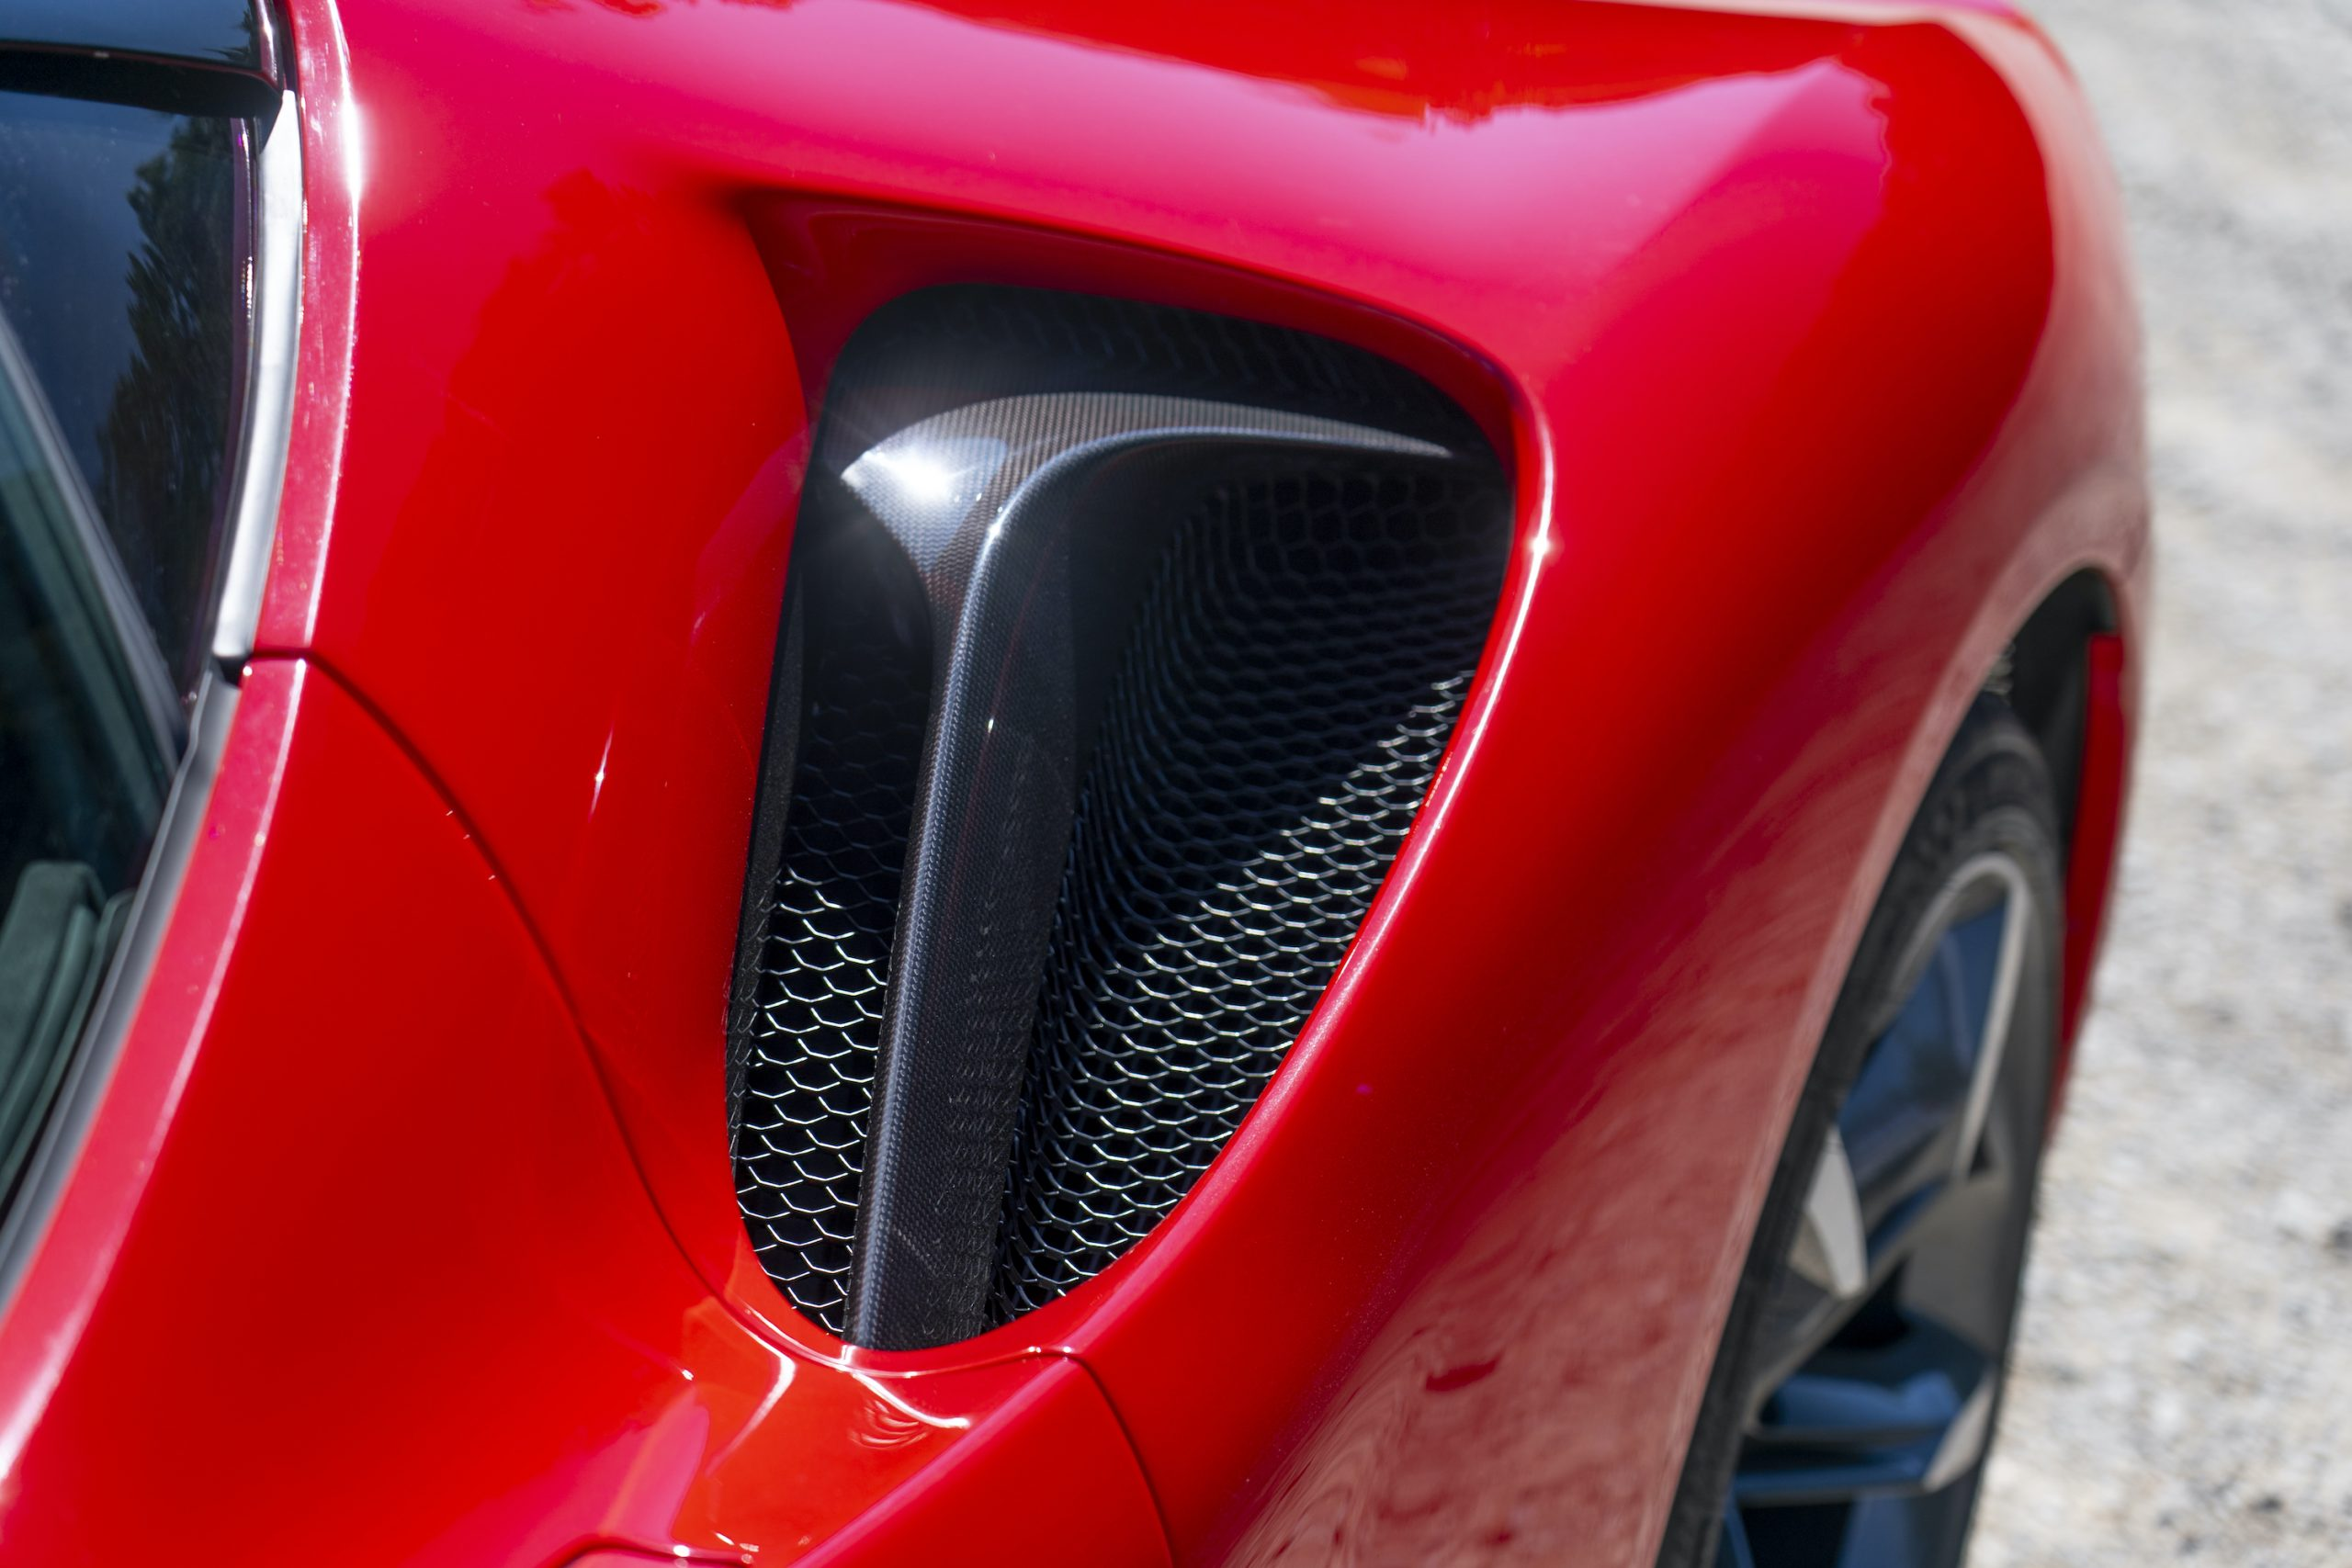 SF90 Stradale rear quarter panel vent